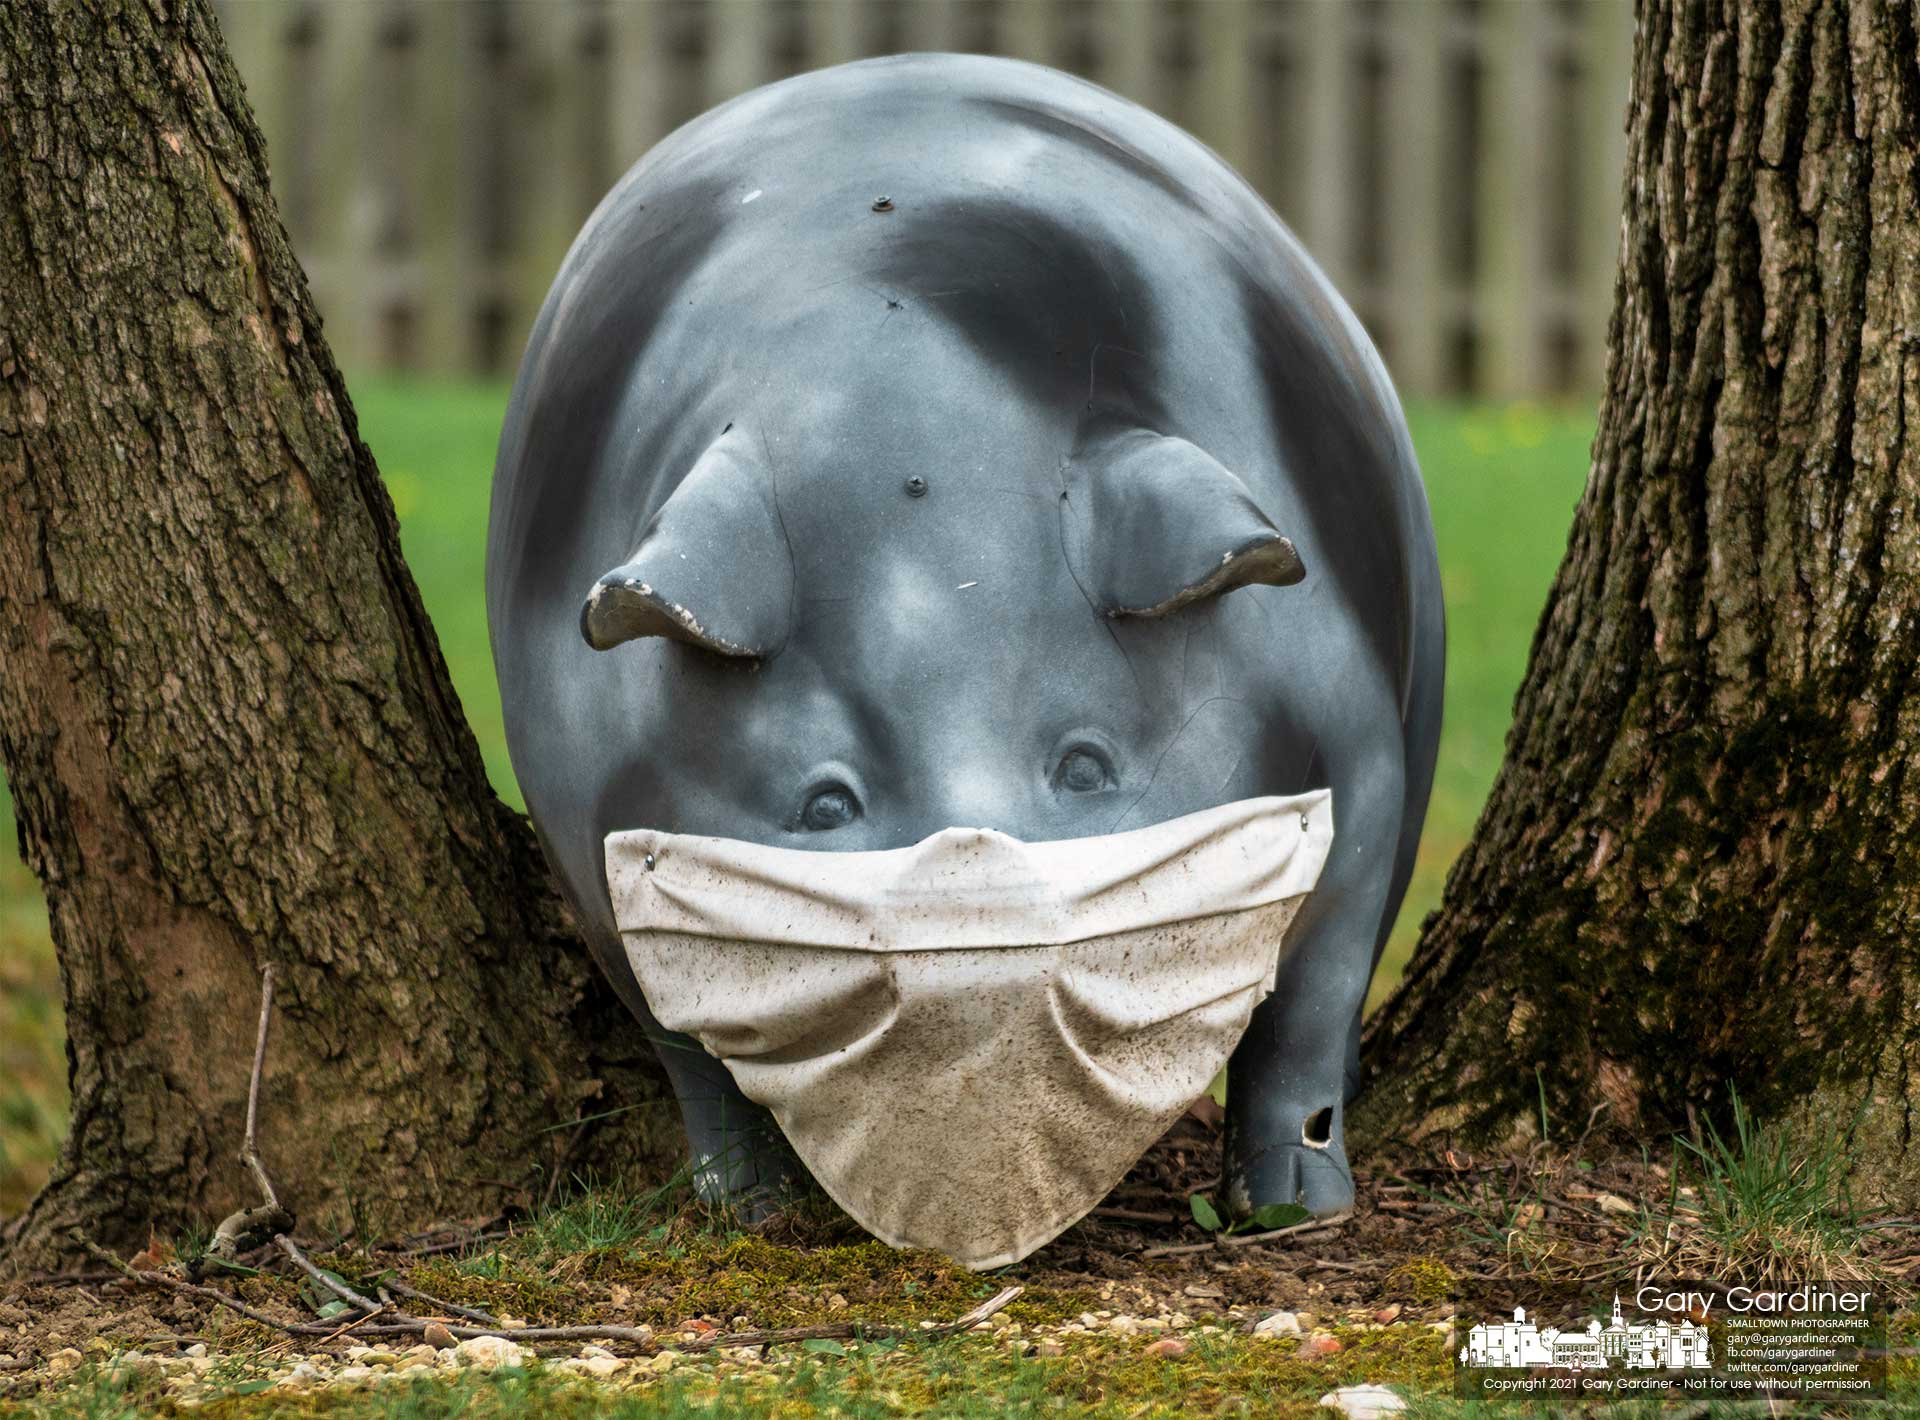 A porcine lawn ornament wears a snout mask to protect itself from the possibility of contracting an airborne illness from its perch on Spring Rd. My Final Photo for April 8, 2021.